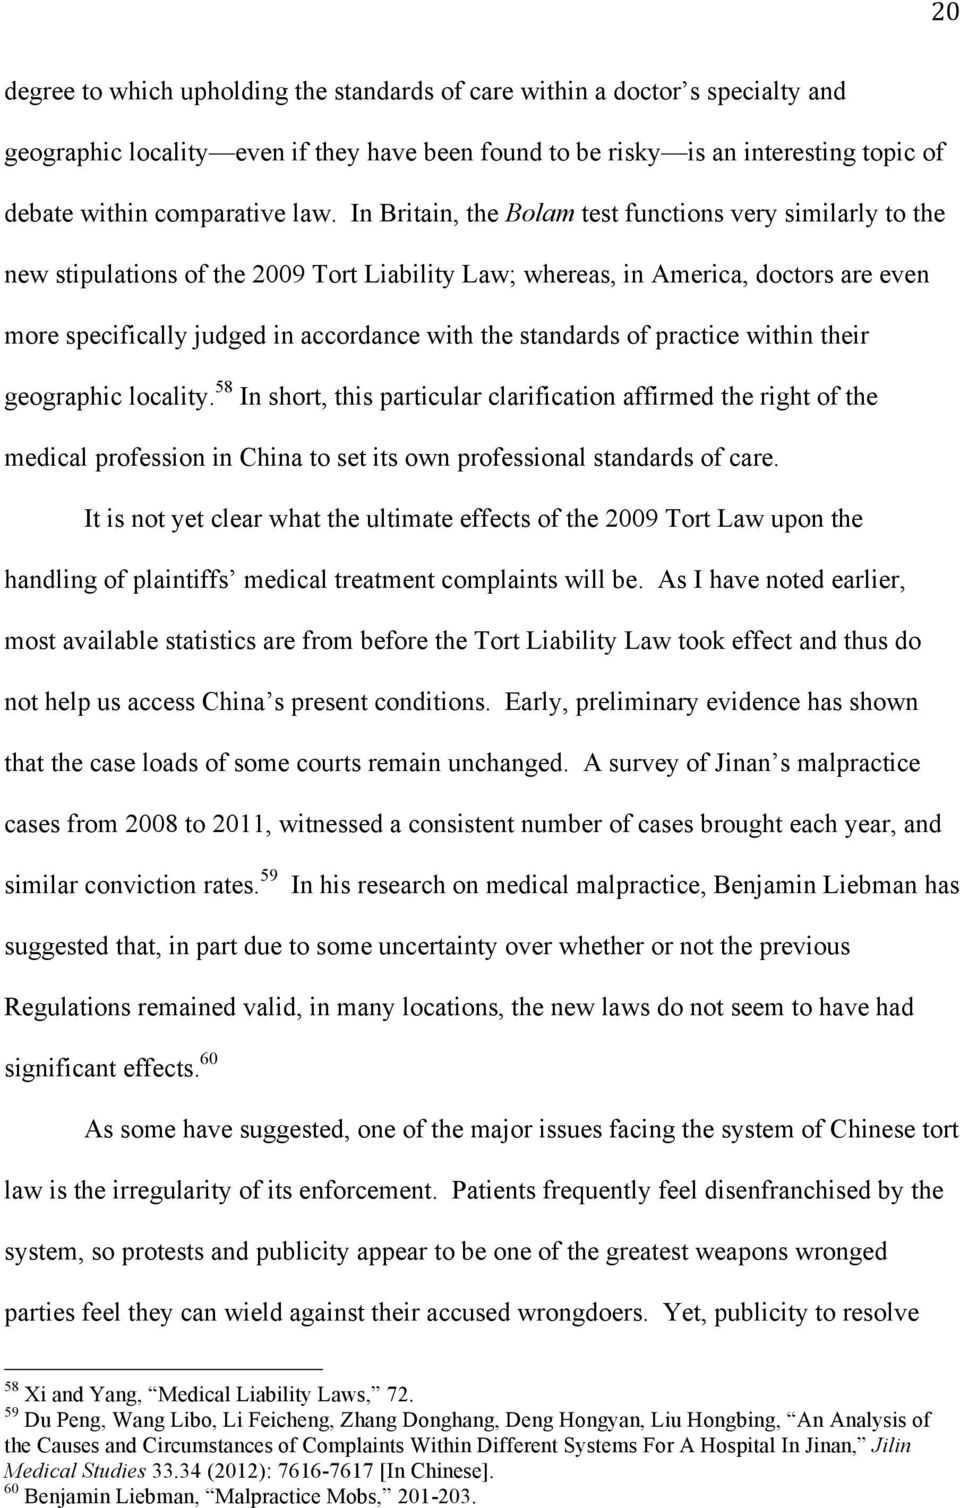 standards of practice within their geographic locality. 58 In short, this particular clarification affirmed the right of the medical profession in China to set its own professional standards of care.